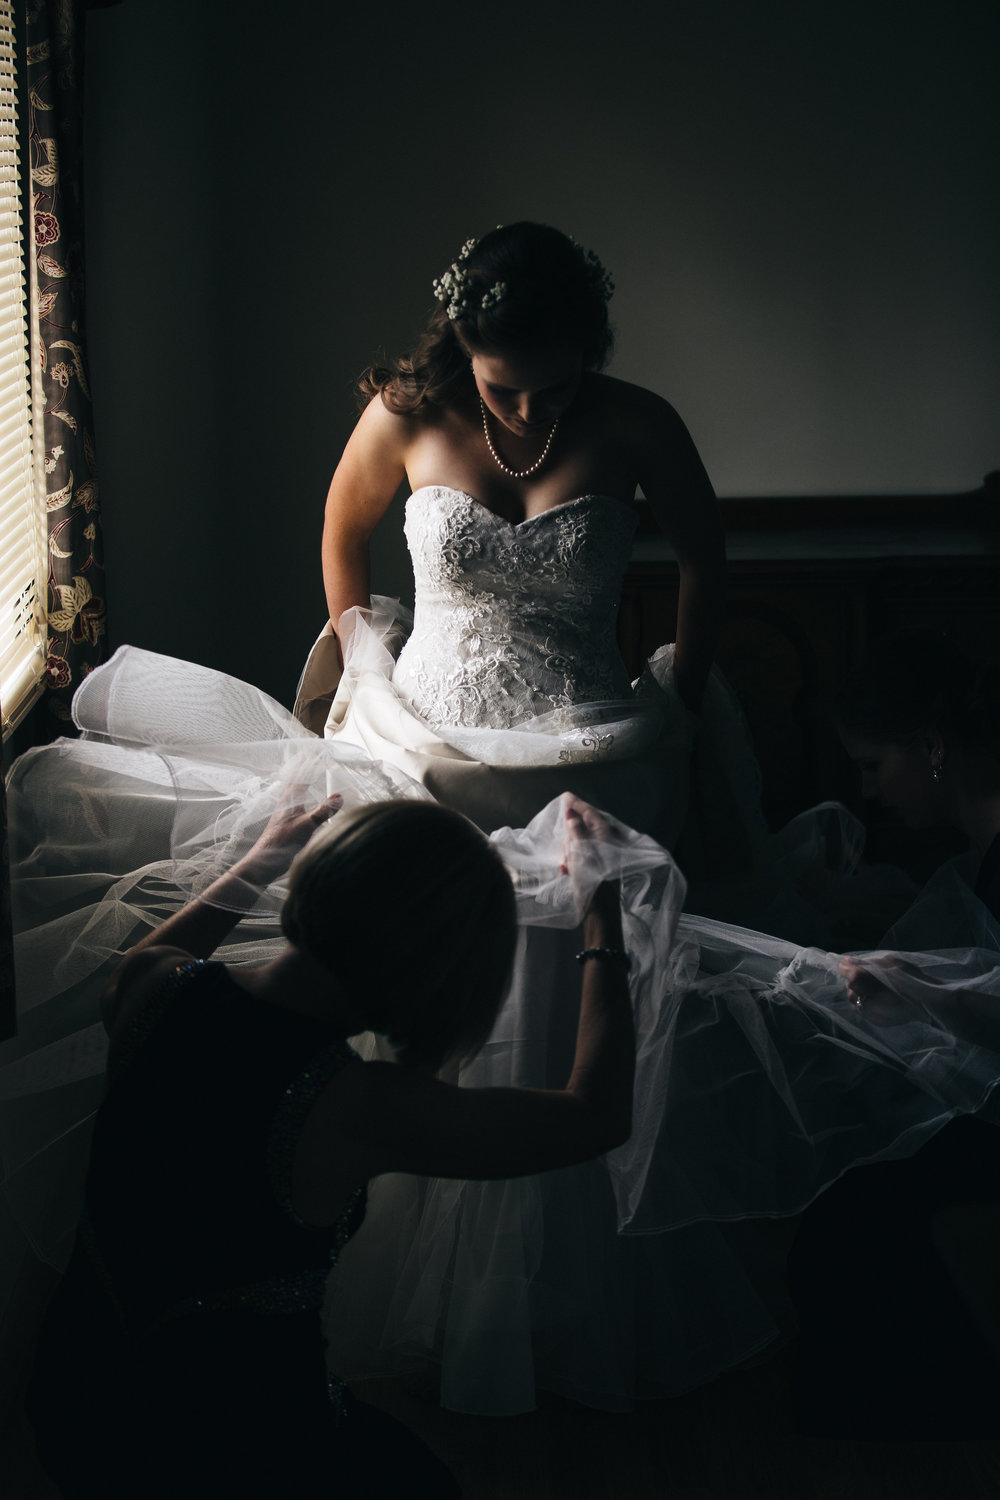 Bride gets into her dress before her wedding ceremony in Bowling Green, Ohio.